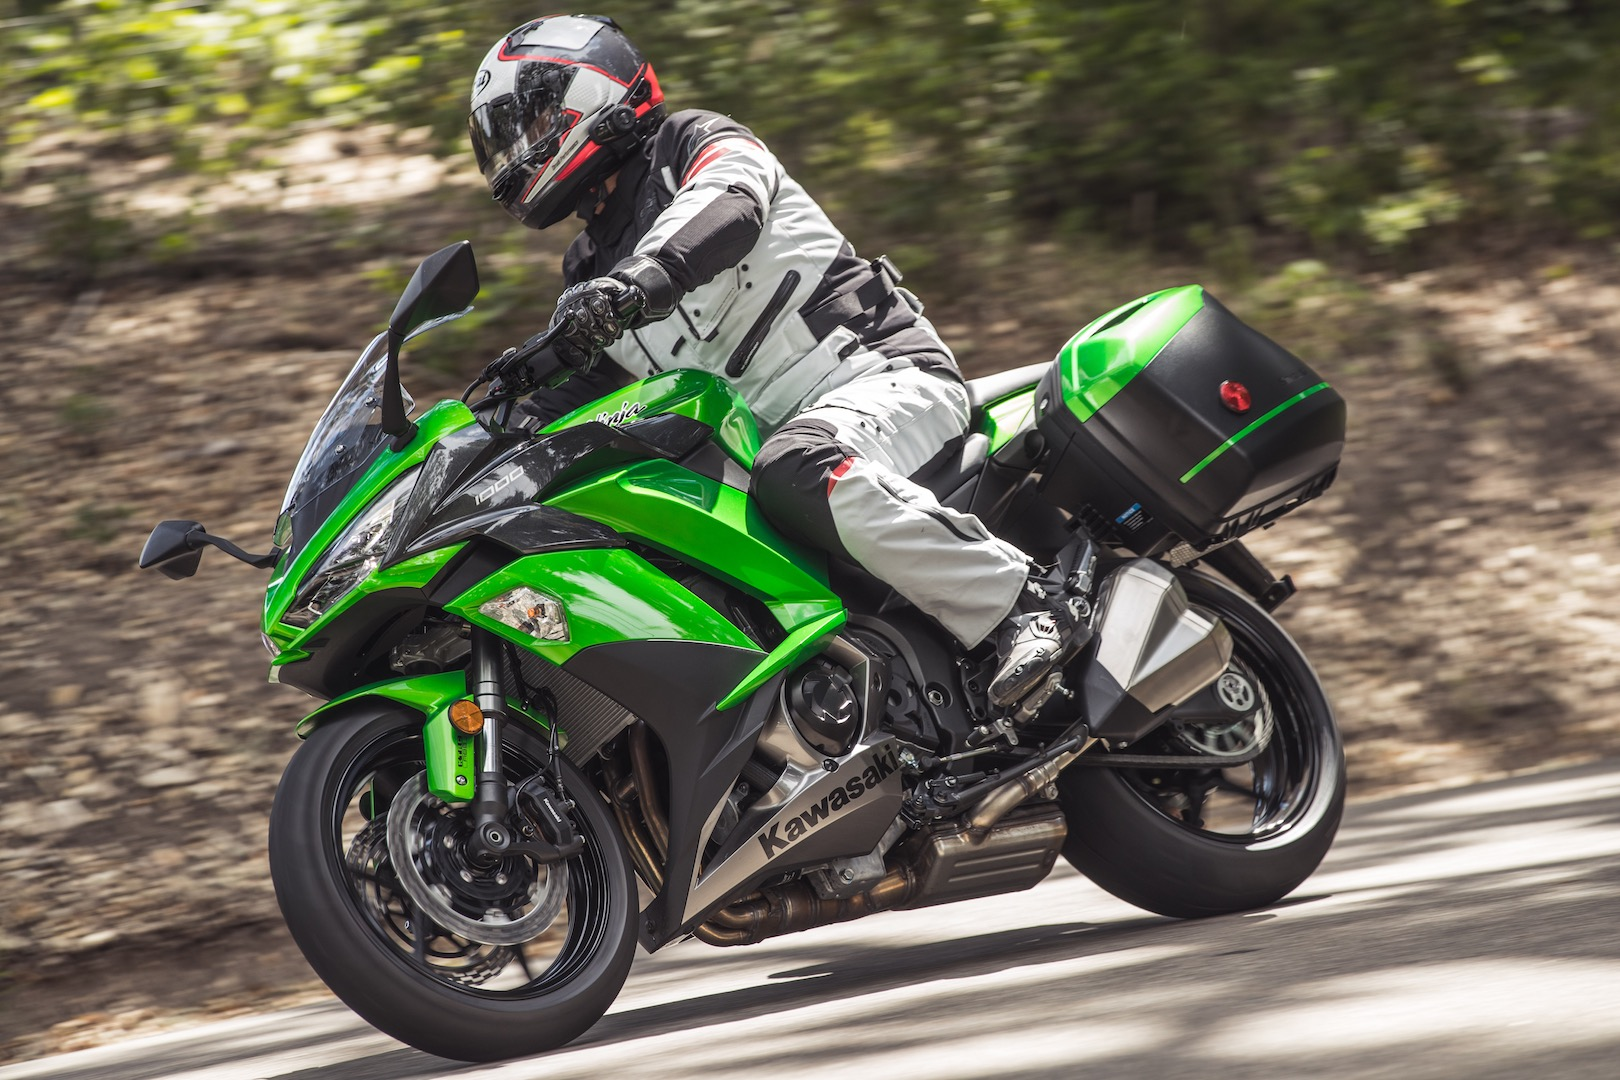 2017 Kawasaki Ninja 1000 ABS Review